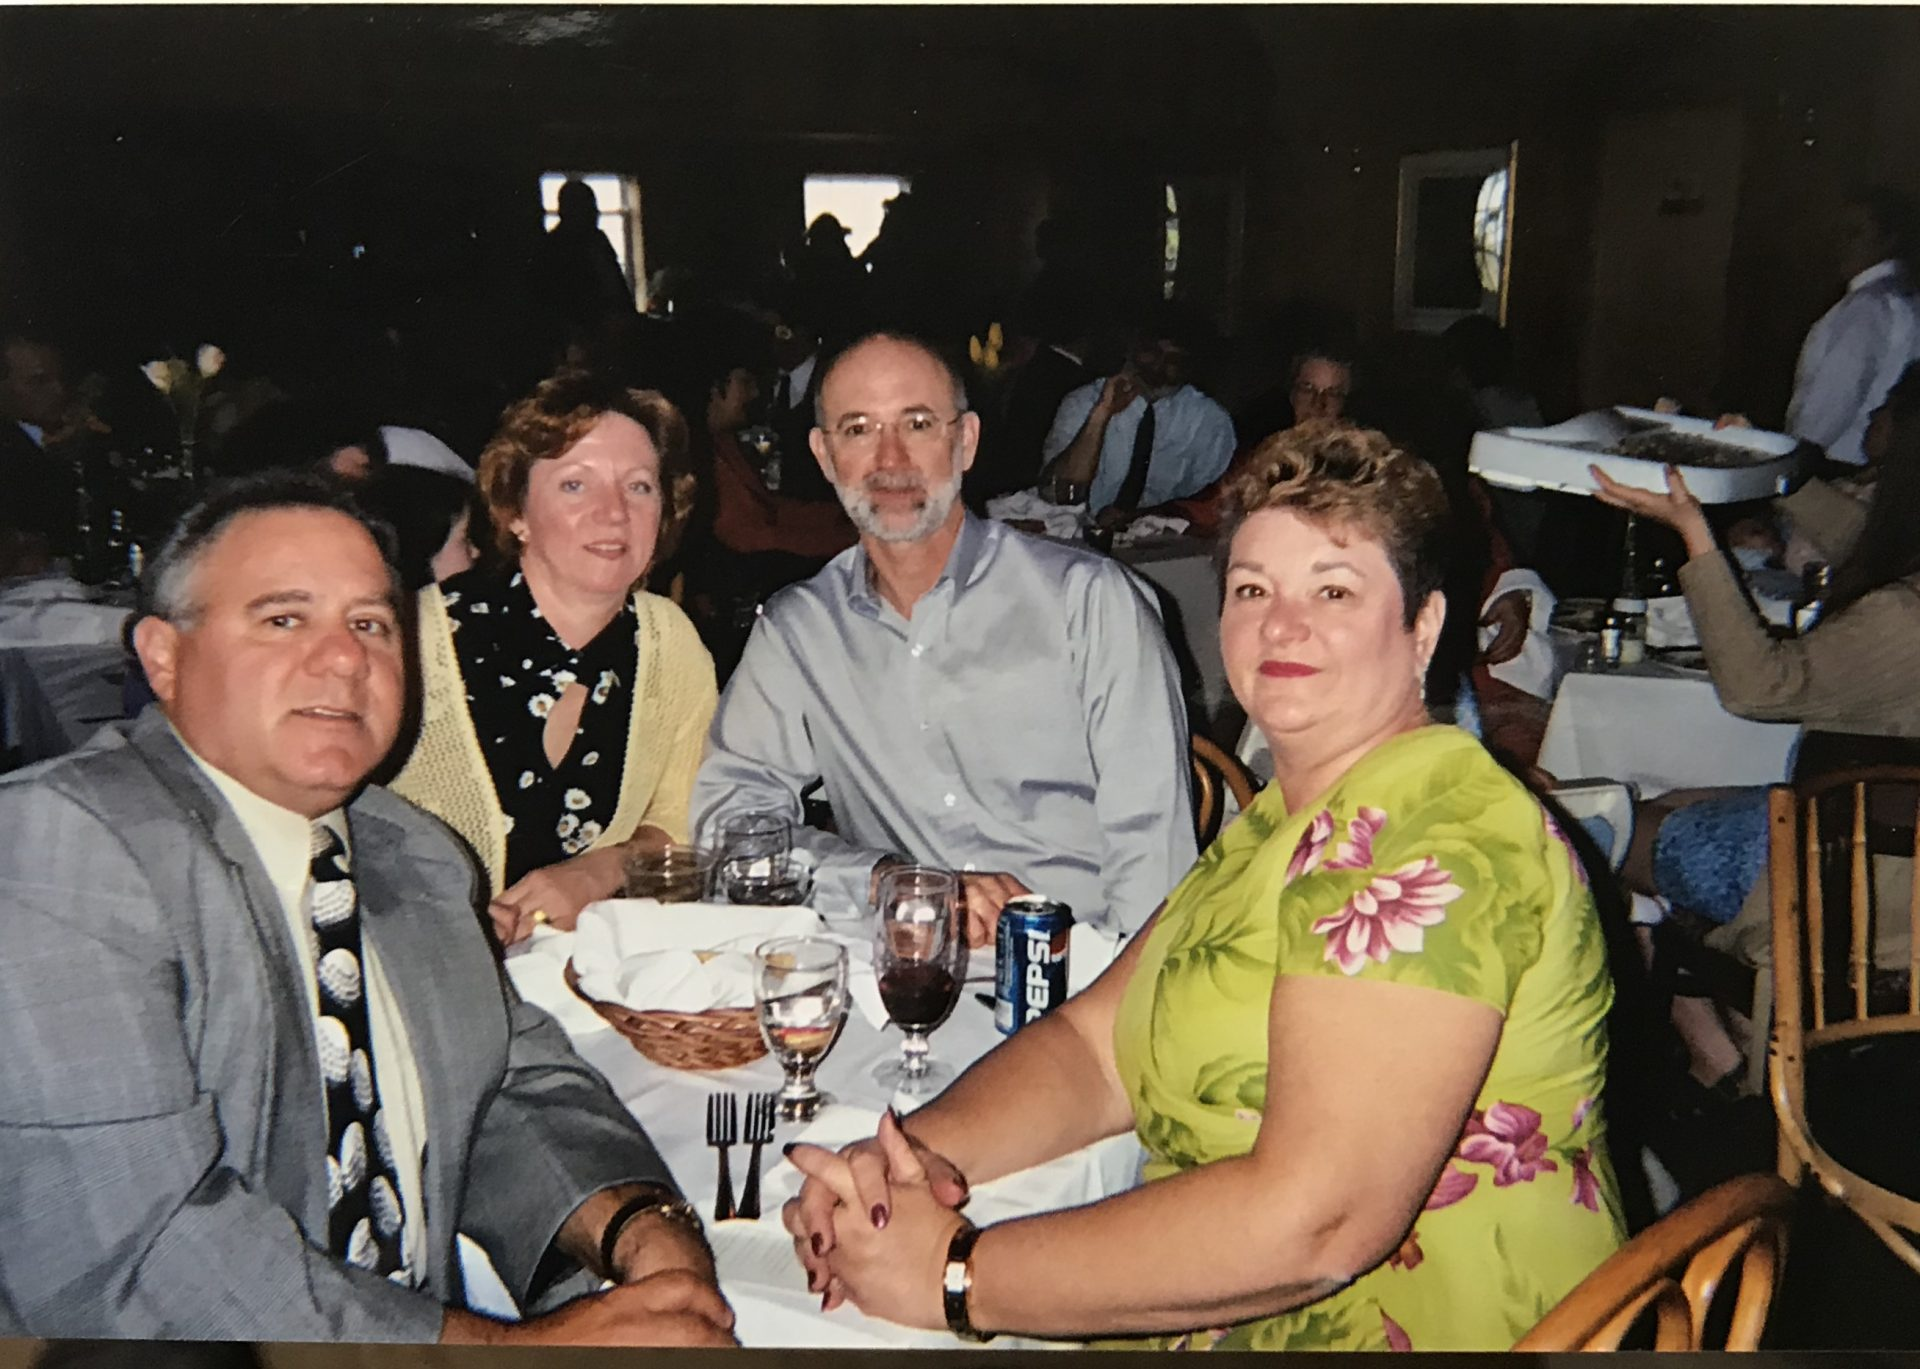 Jimmy Infantino, Brenda Double, Dennis Double and Diane Infantino.  May 3, 2003, Cindy and Andy Callaghan's wedding